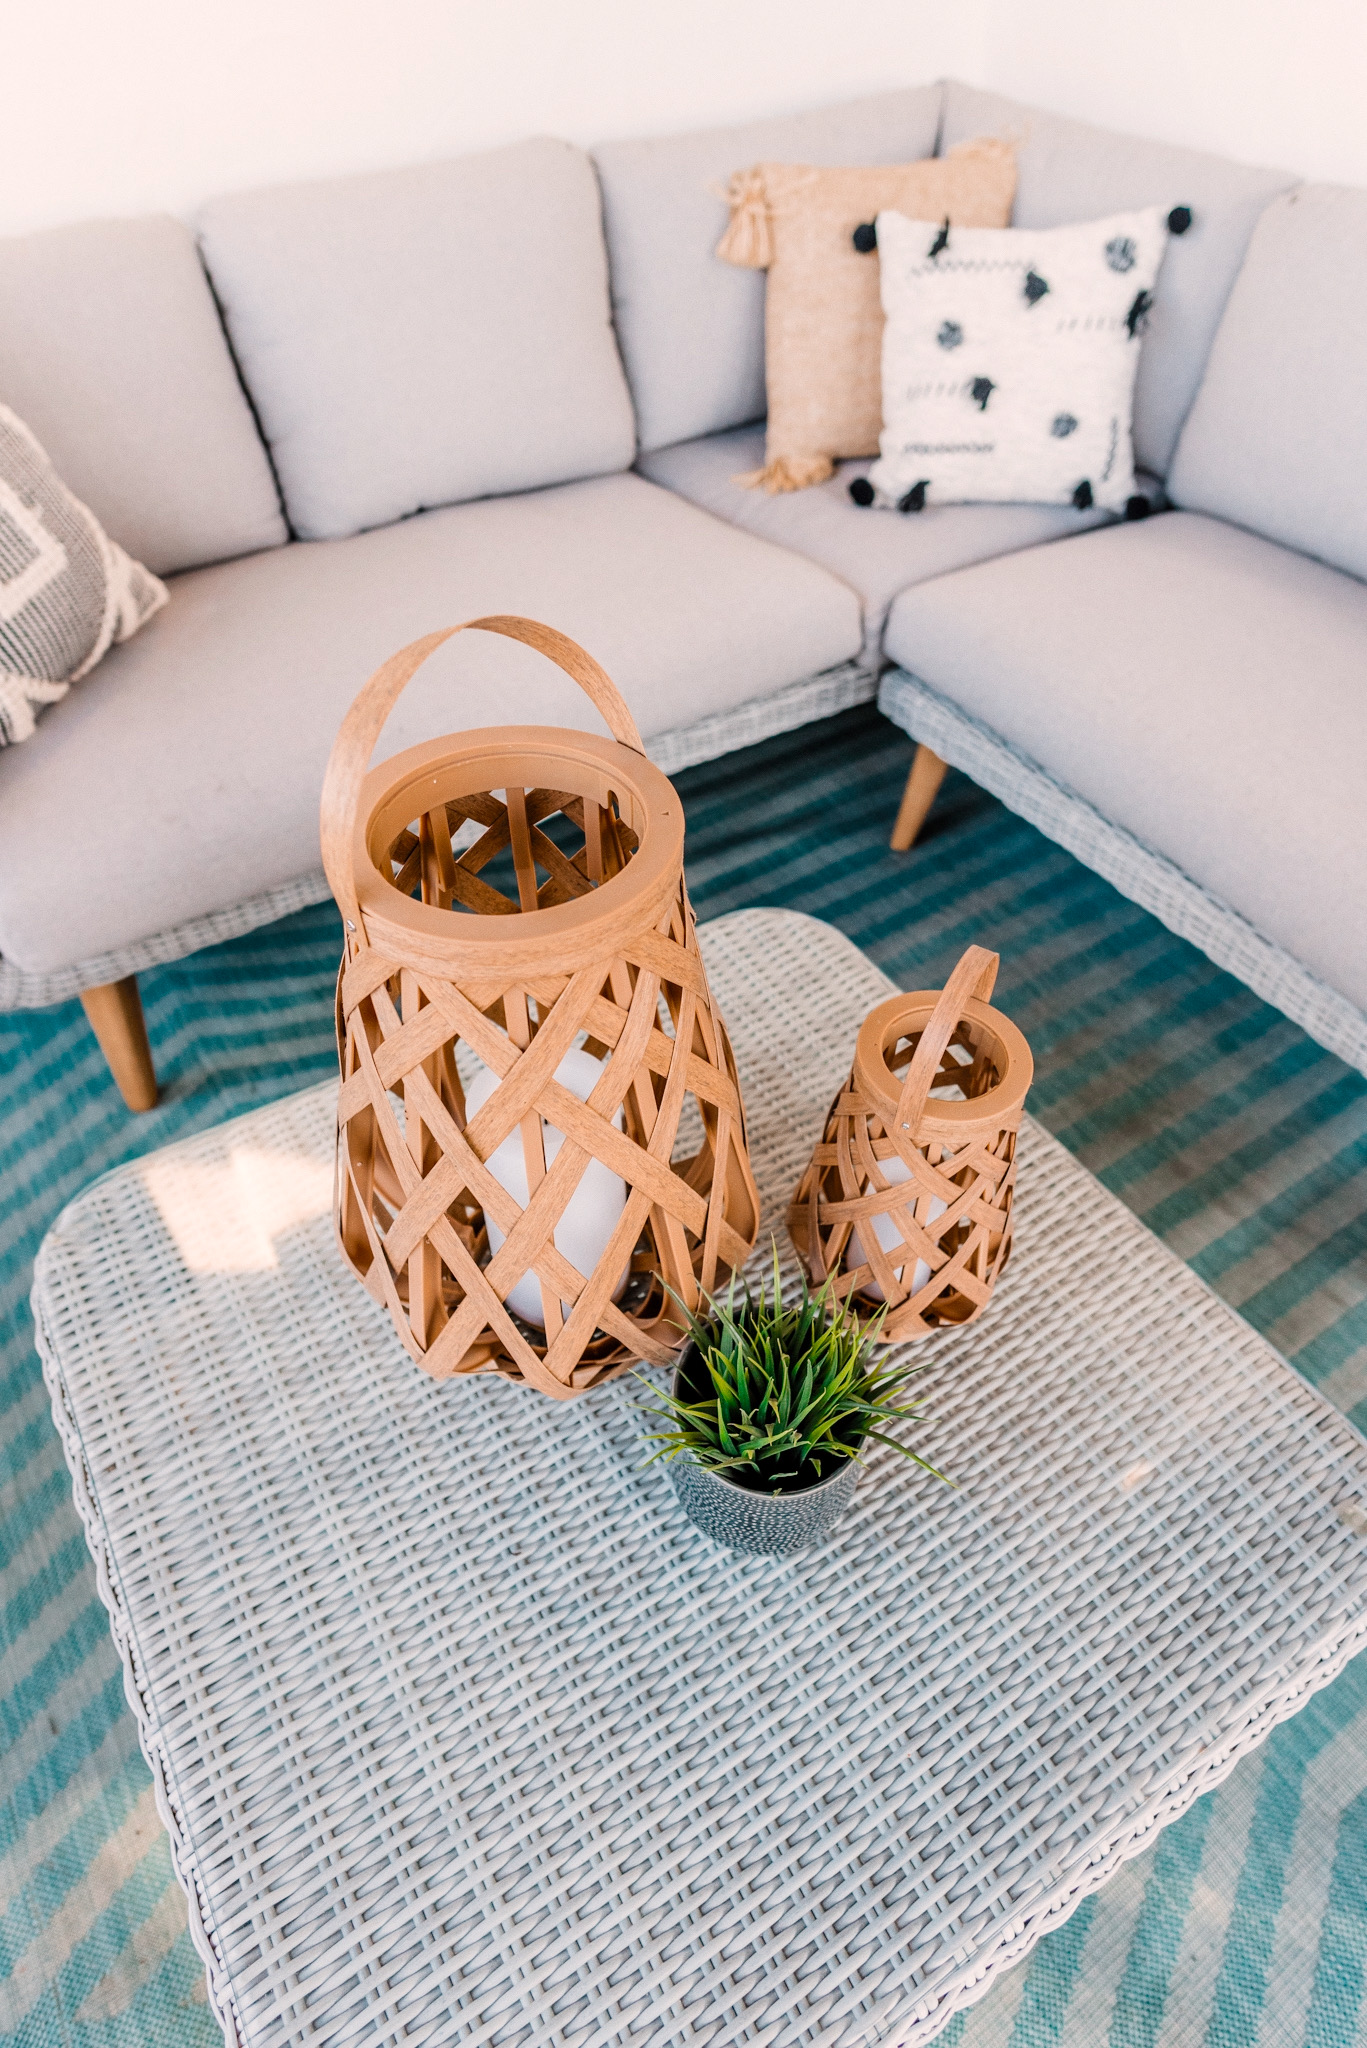 CB2 OUTDOOR DECOR featured by top San Diego lifestyle blogger, Navy Grace.   CB2 Furniture by popular San Diego life and style blog, Navy Grace: image of a CB2 hurricane lantern, Seminyak Gray Planter, snake tongue plants, blue outdoor rug, woven wicker outdoor couch, woven wicker coffee table, woven basket, and Rattan chairs.